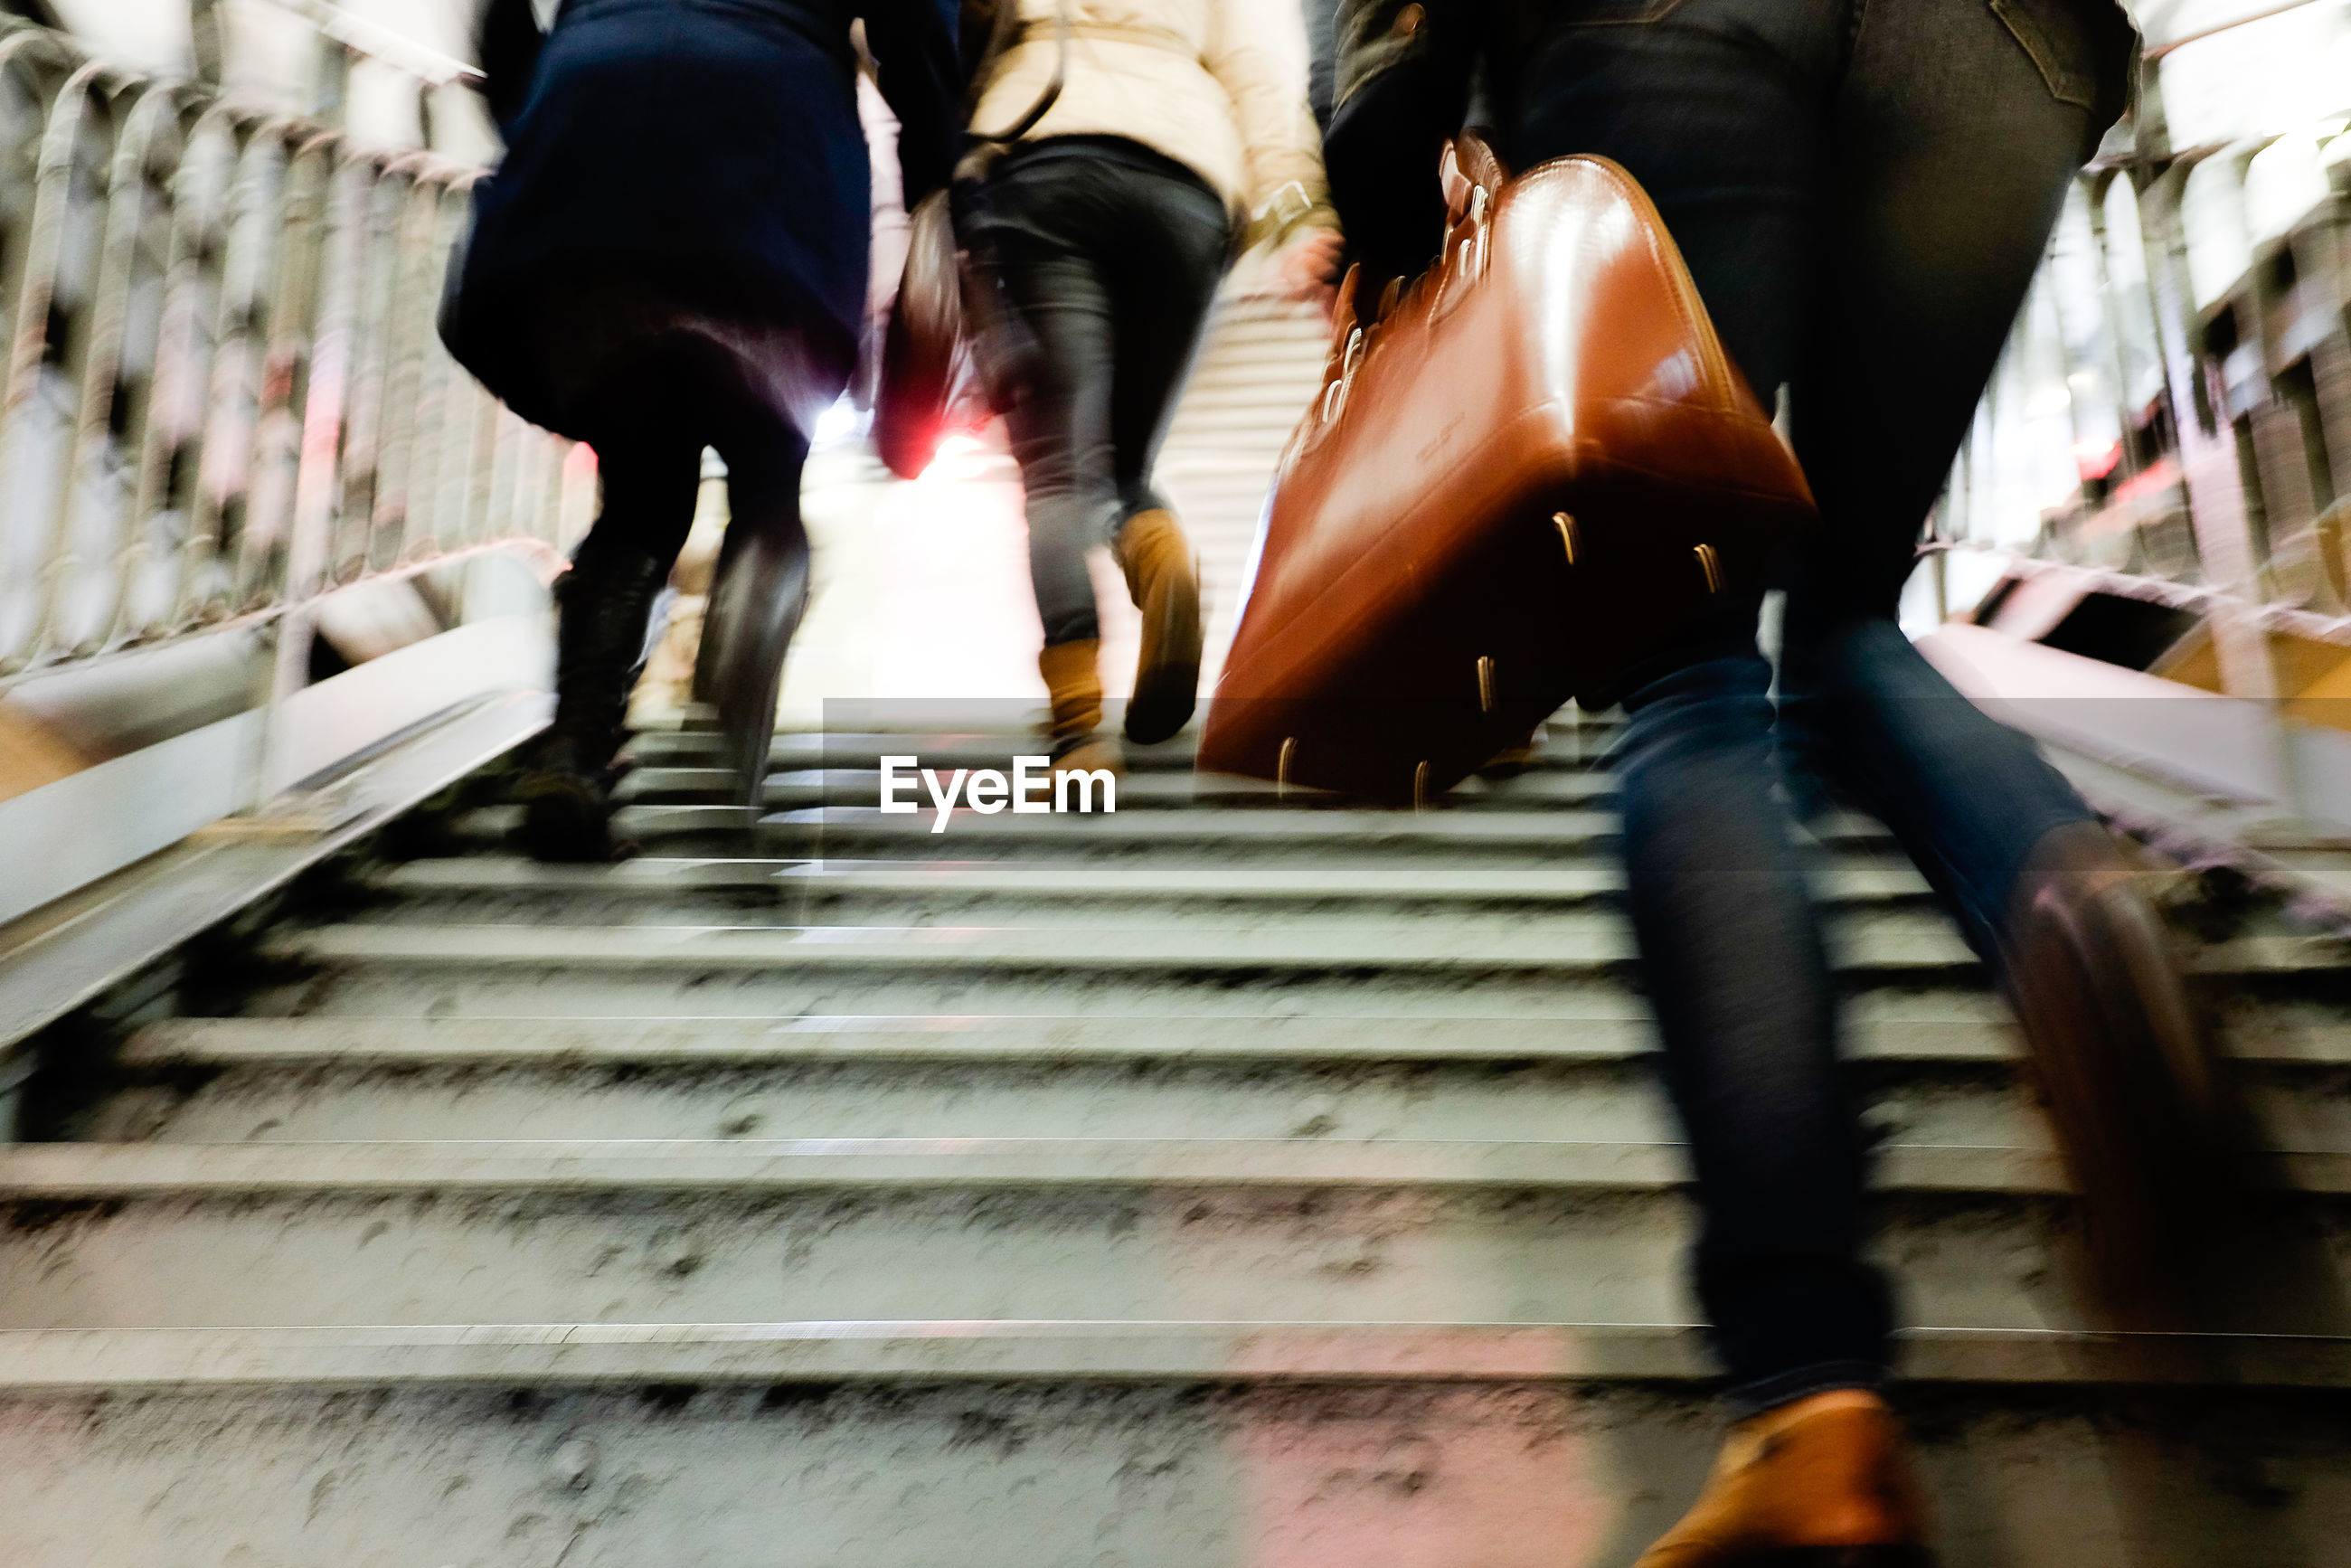 Low section of people walking on staircase